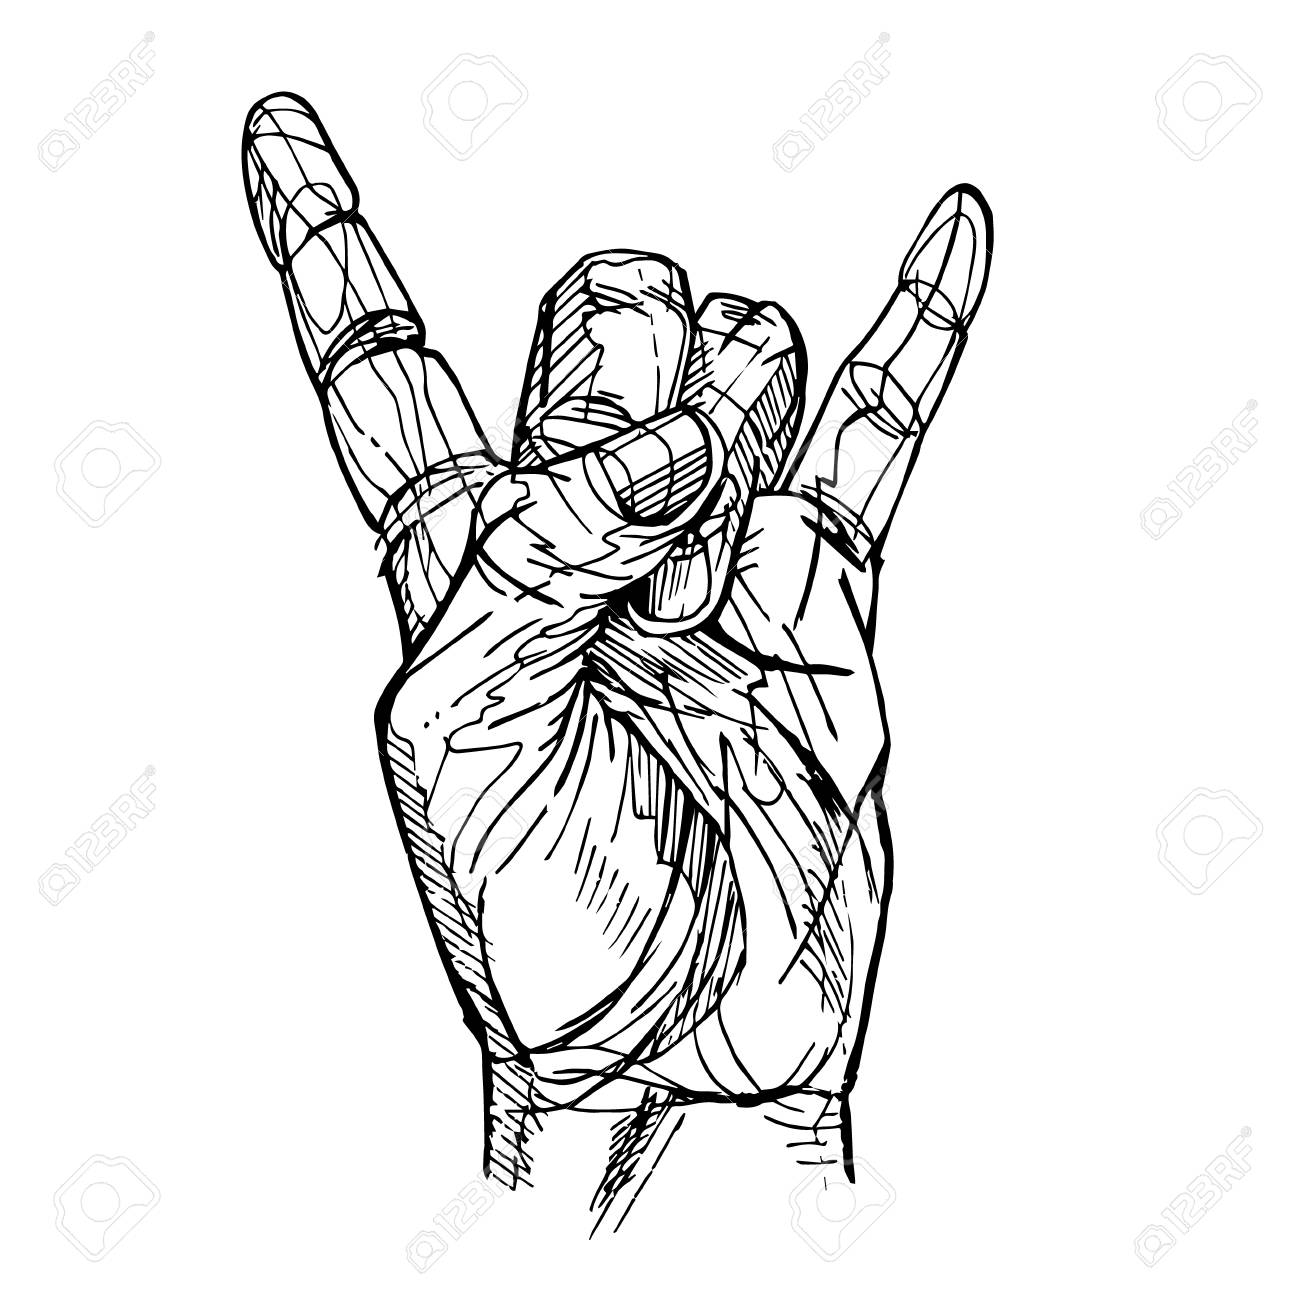 1300x1300 Rock Roll Hand Sign Sketch Royalty Free Cliparts, Vectors,